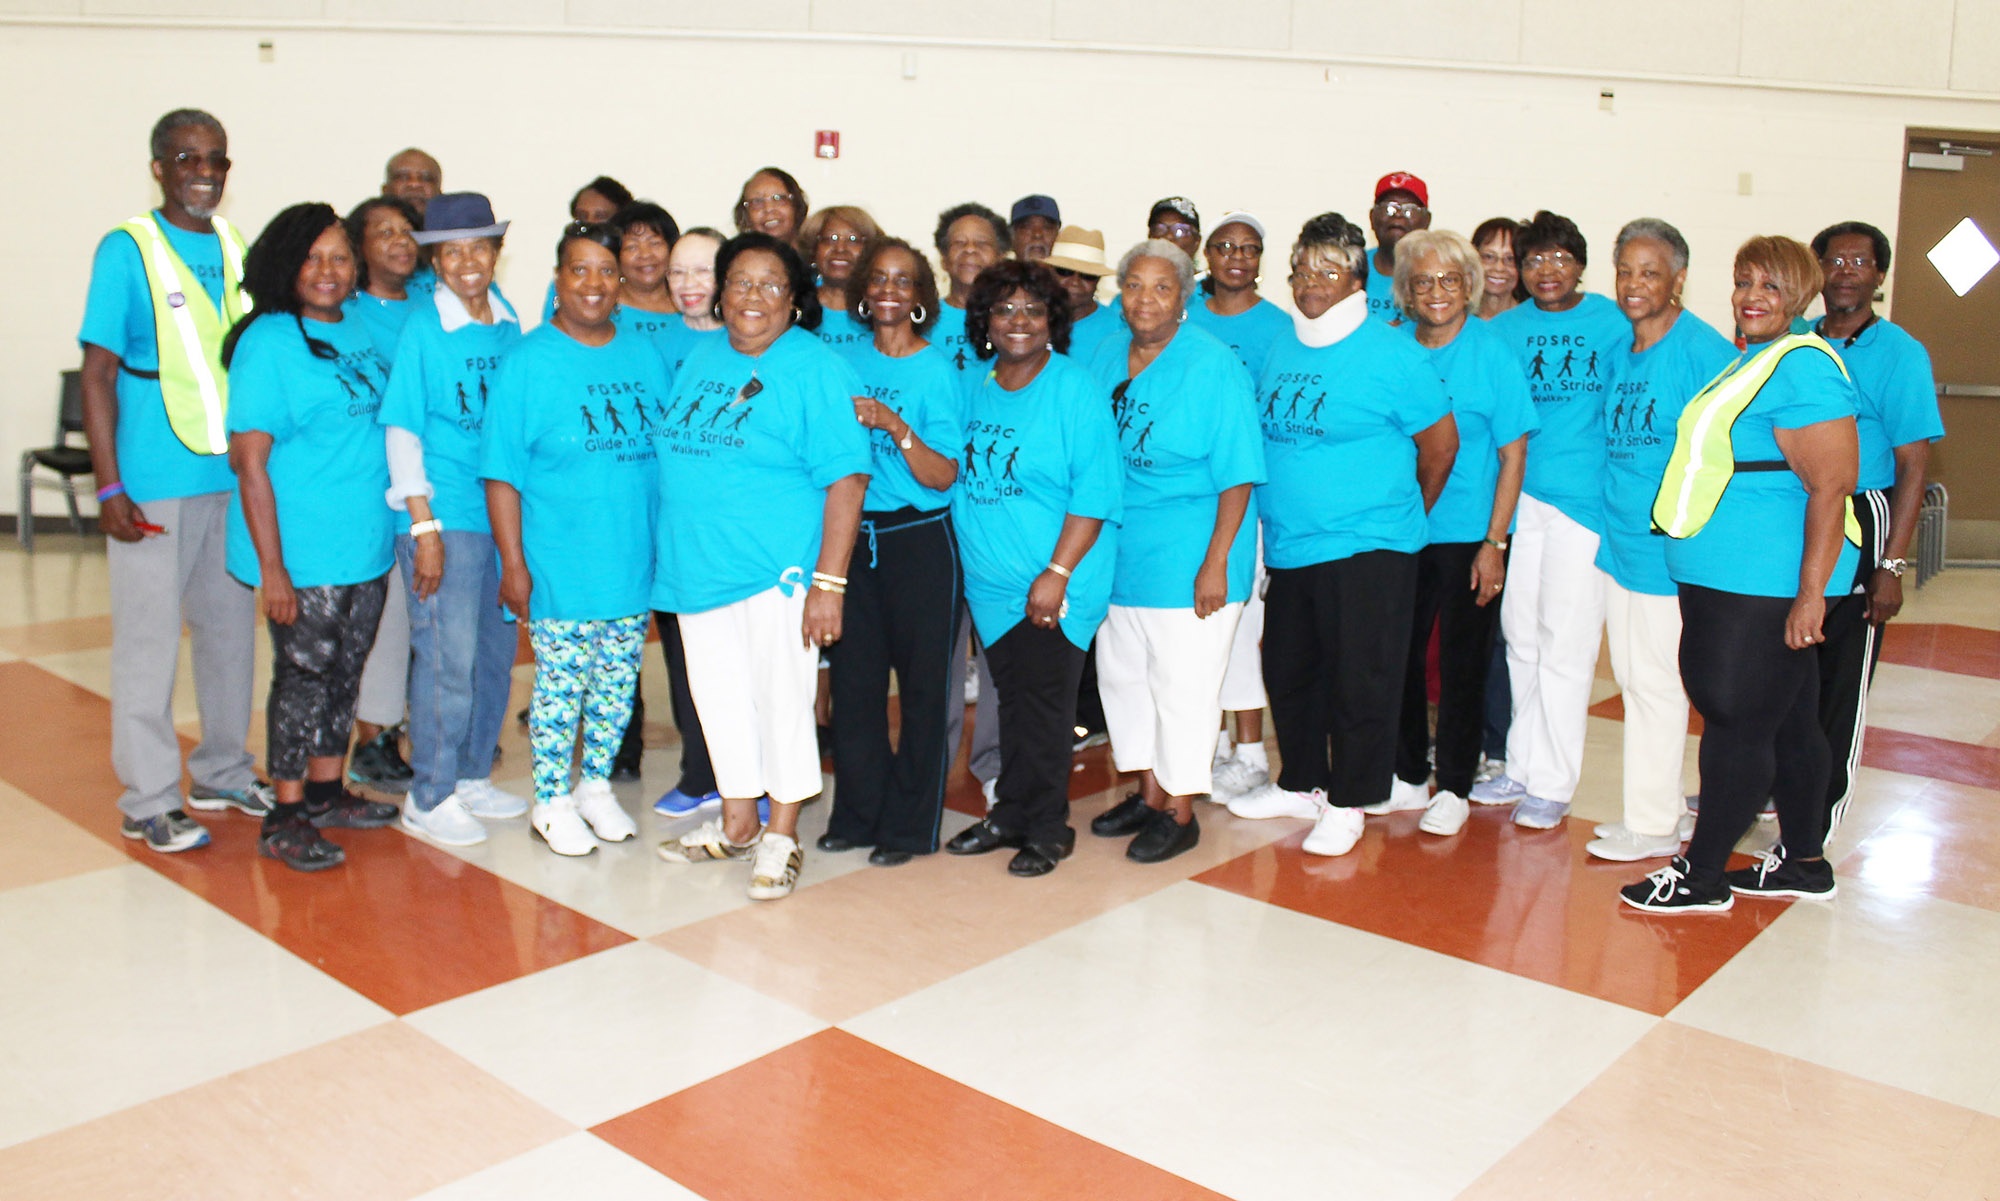 Fourth District Seniors Resource Center